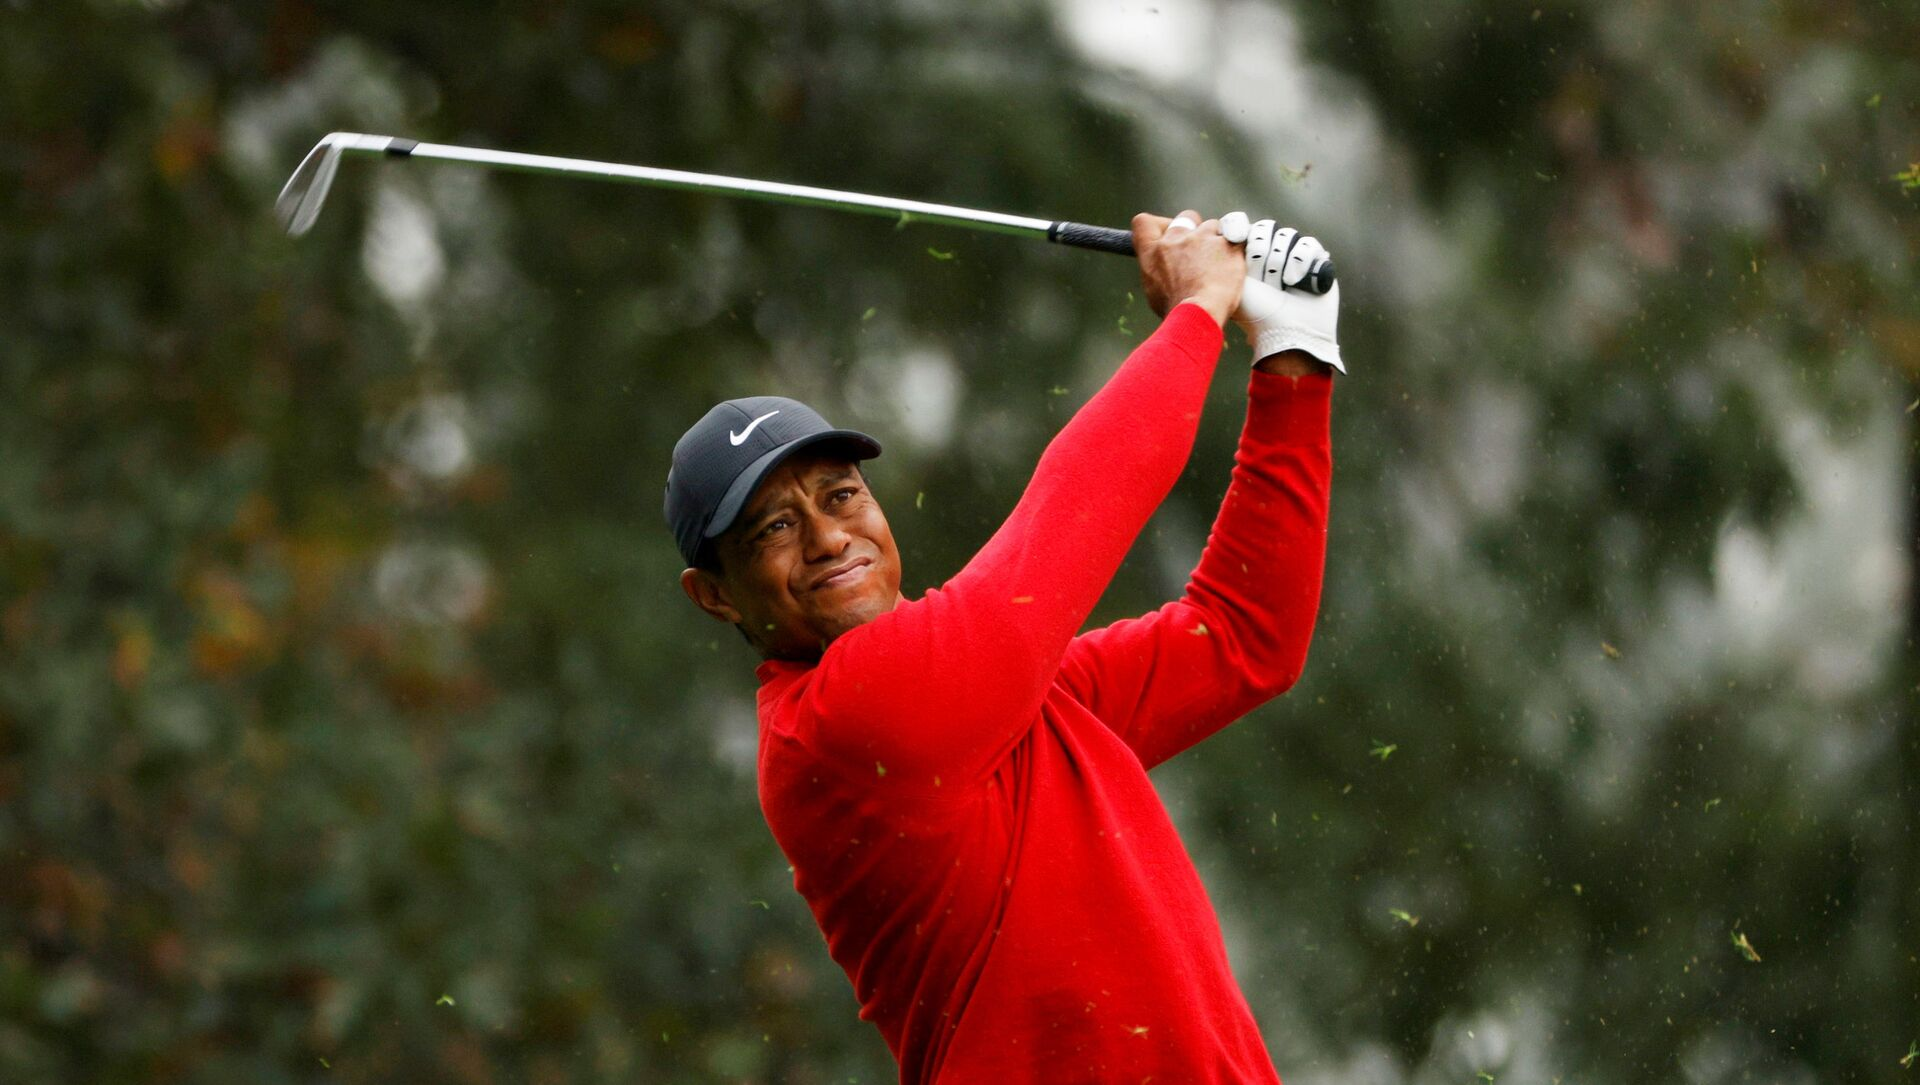 FILE PHOTO: Golf - The Masters - Augusta National Golf Club - Augusta, Georgia, U.S. - November 15, 2020 Tiger Woods of the U.S. on the 4th hole during the final round REUTERS/Mike Segar/File Photo - Sputnik International, 1920, 24.02.2021